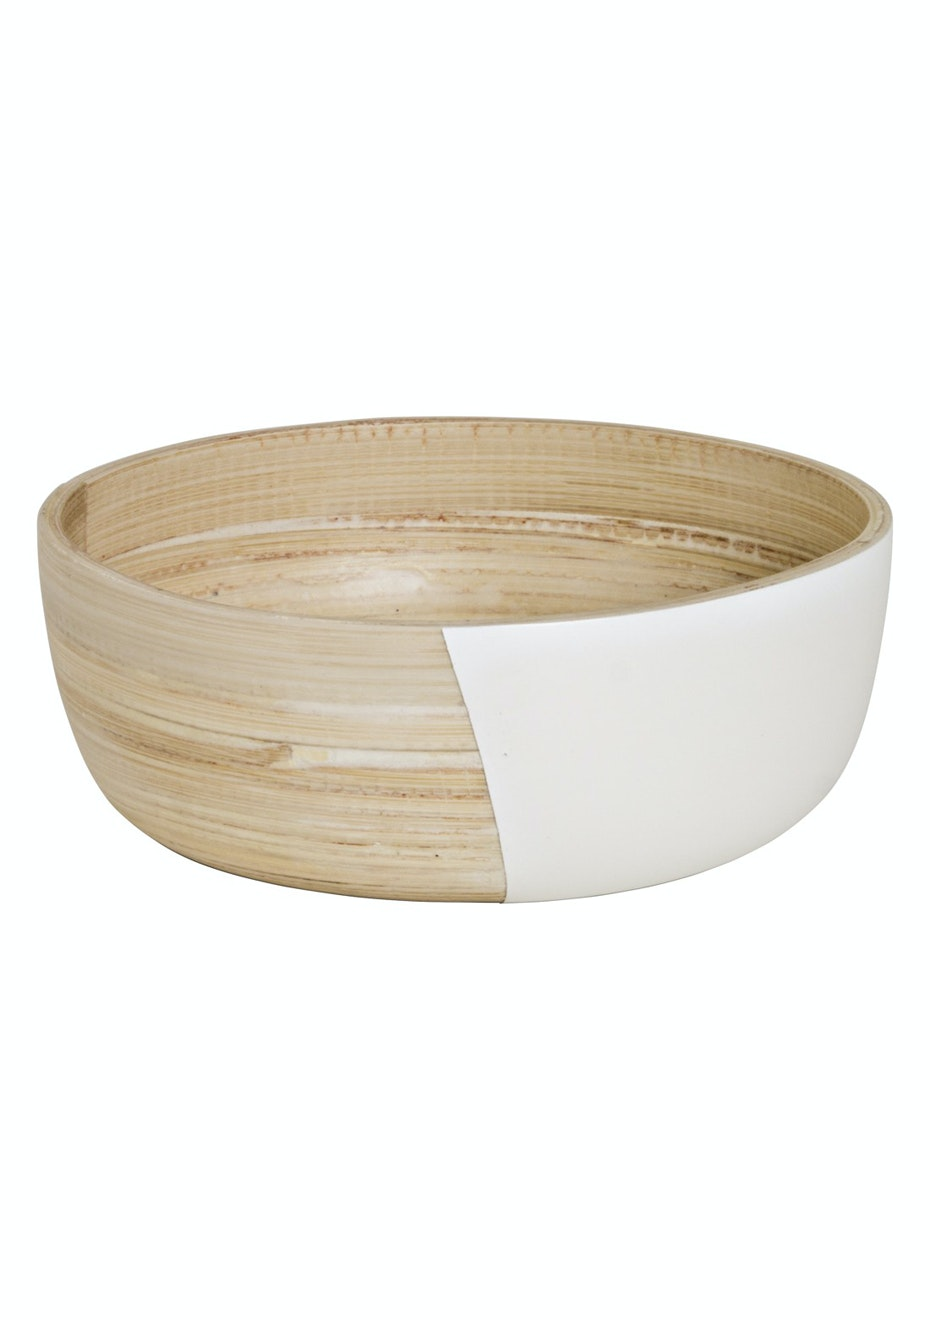 Jason - Lacquered Wooden Bowl Small - White